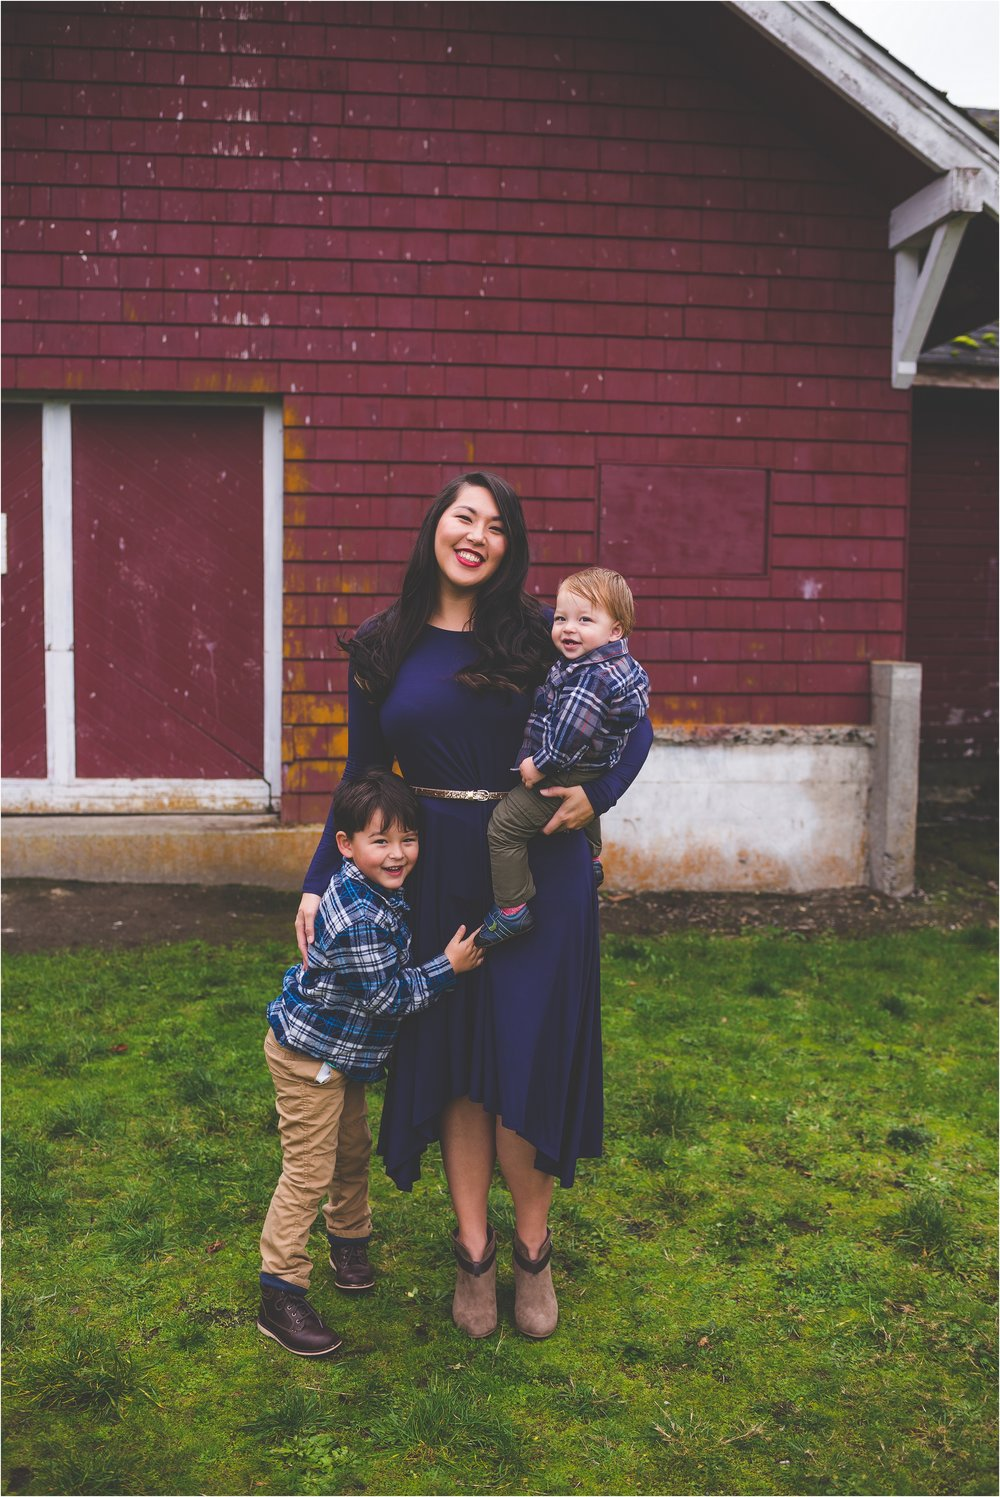 fort-steilacoom-park-family-session-jannicka-mayte-pacific-northwest-lifestyle-photographer_0012.jpg